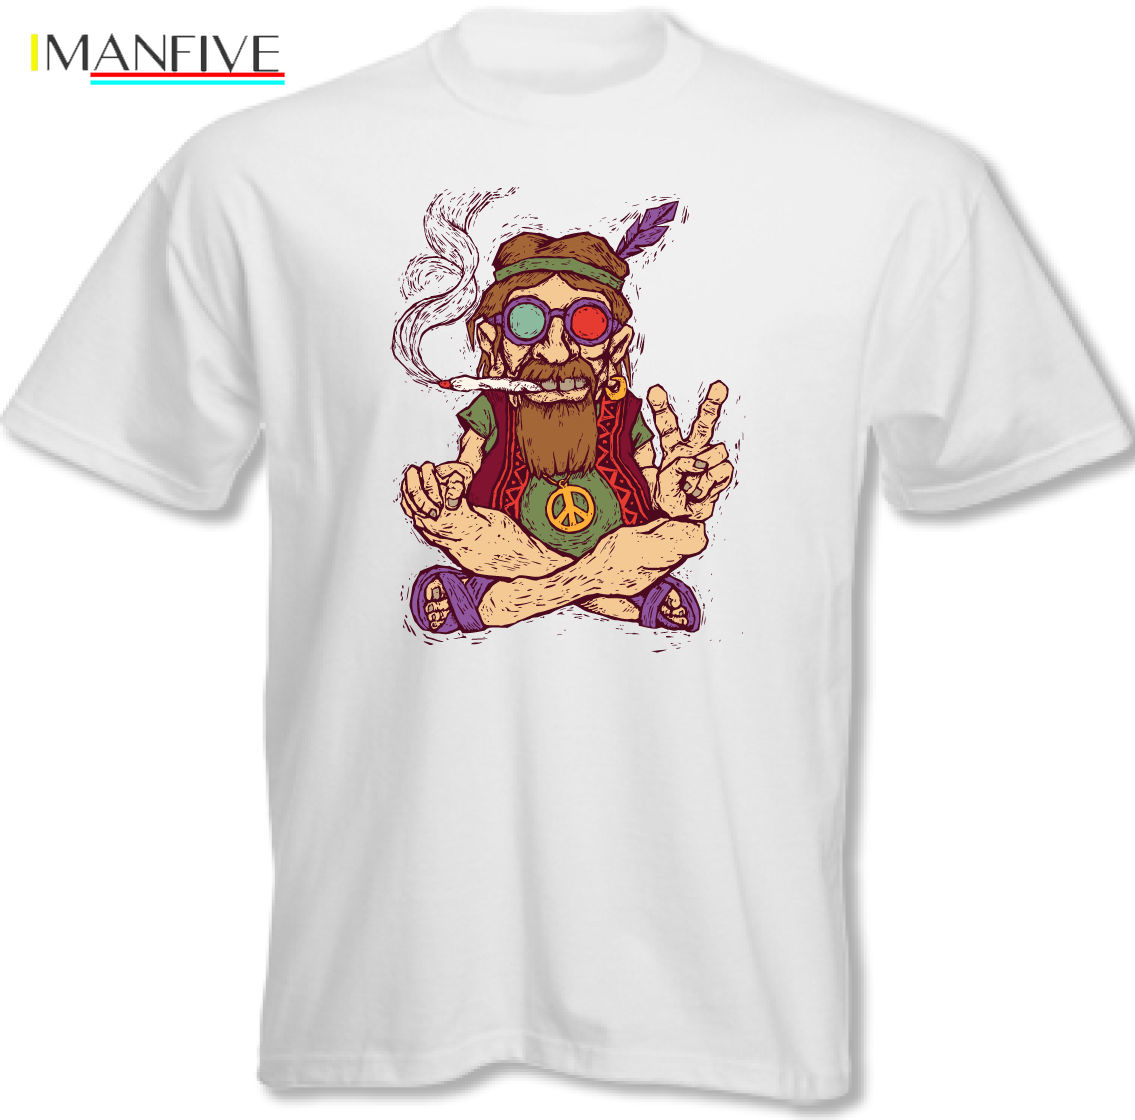 Chilled Out Hippy Smoking A Spliff Mens Funny T Shirt Peace Love Weed New Design Cotton Male Tee Shirt Designing Simple Style in T Shirts from Men 39 s Clothing